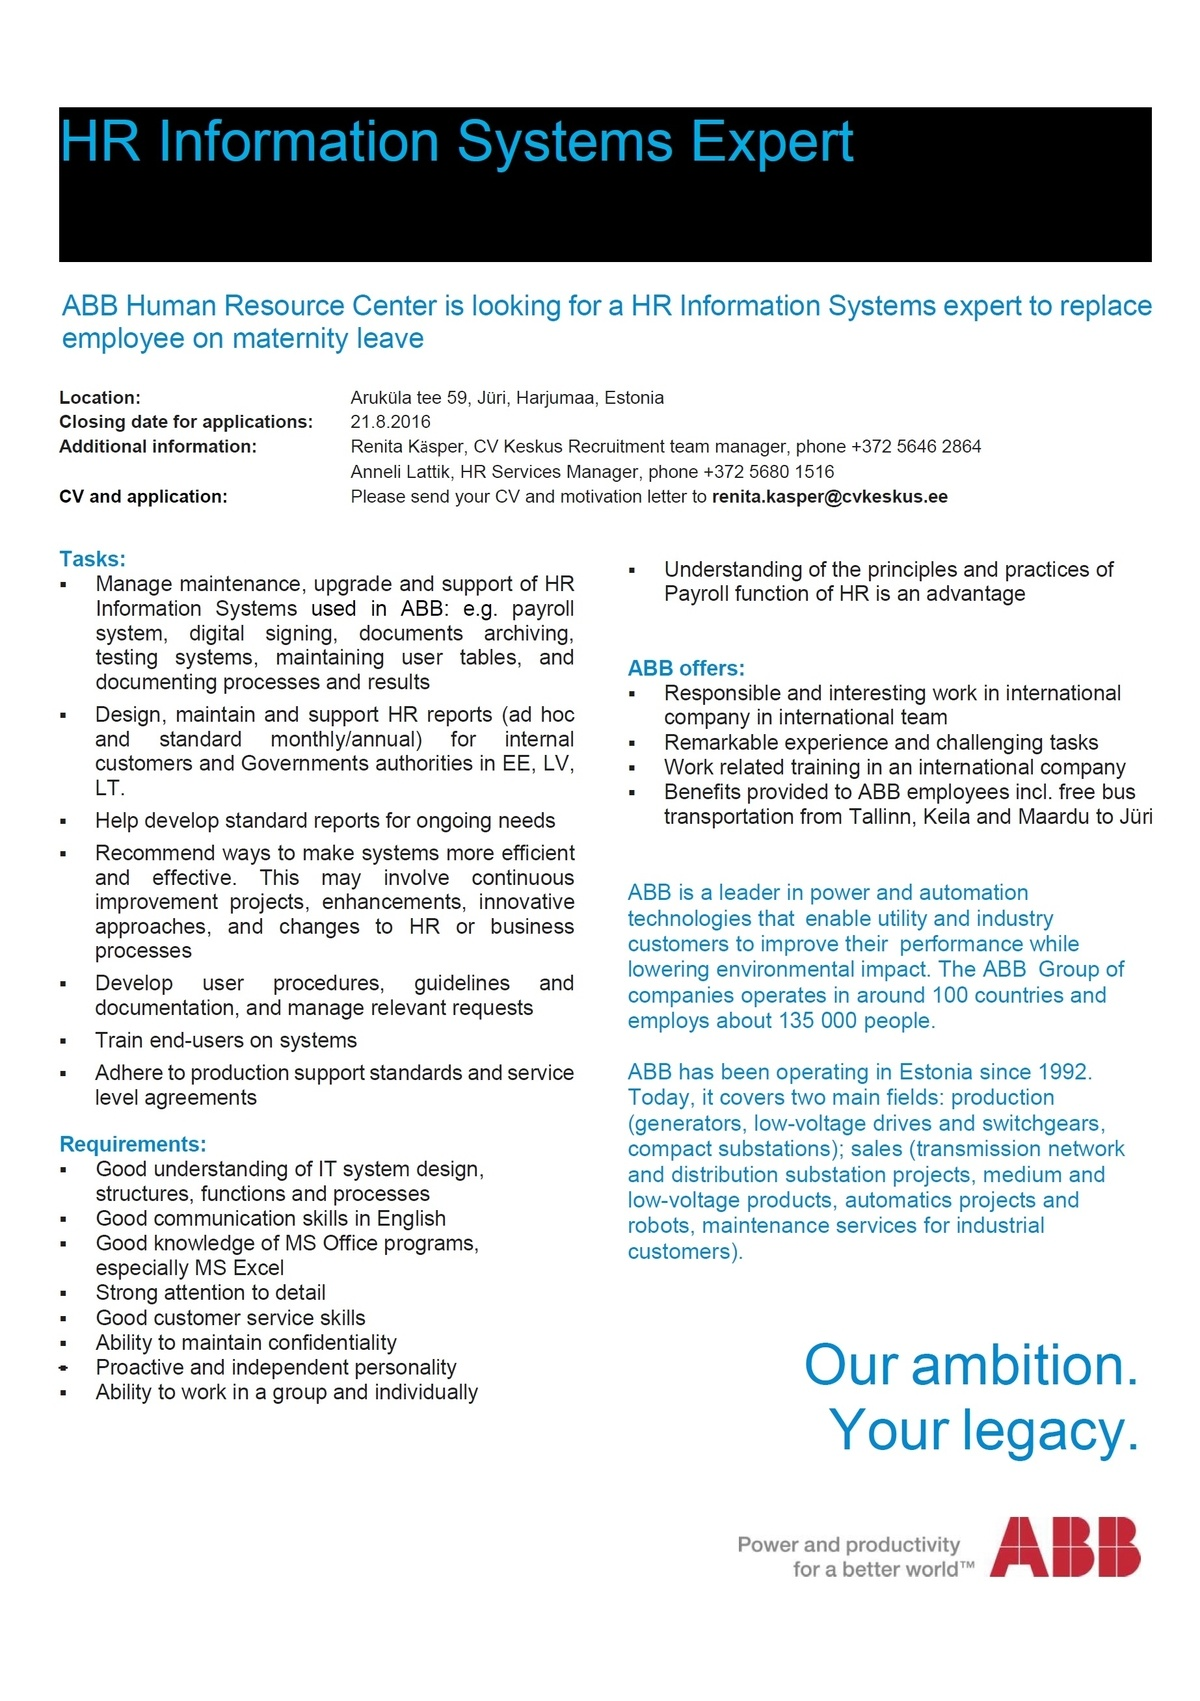 CVKeskus.ee klient ABB is looking for a HR Information Systems Expert